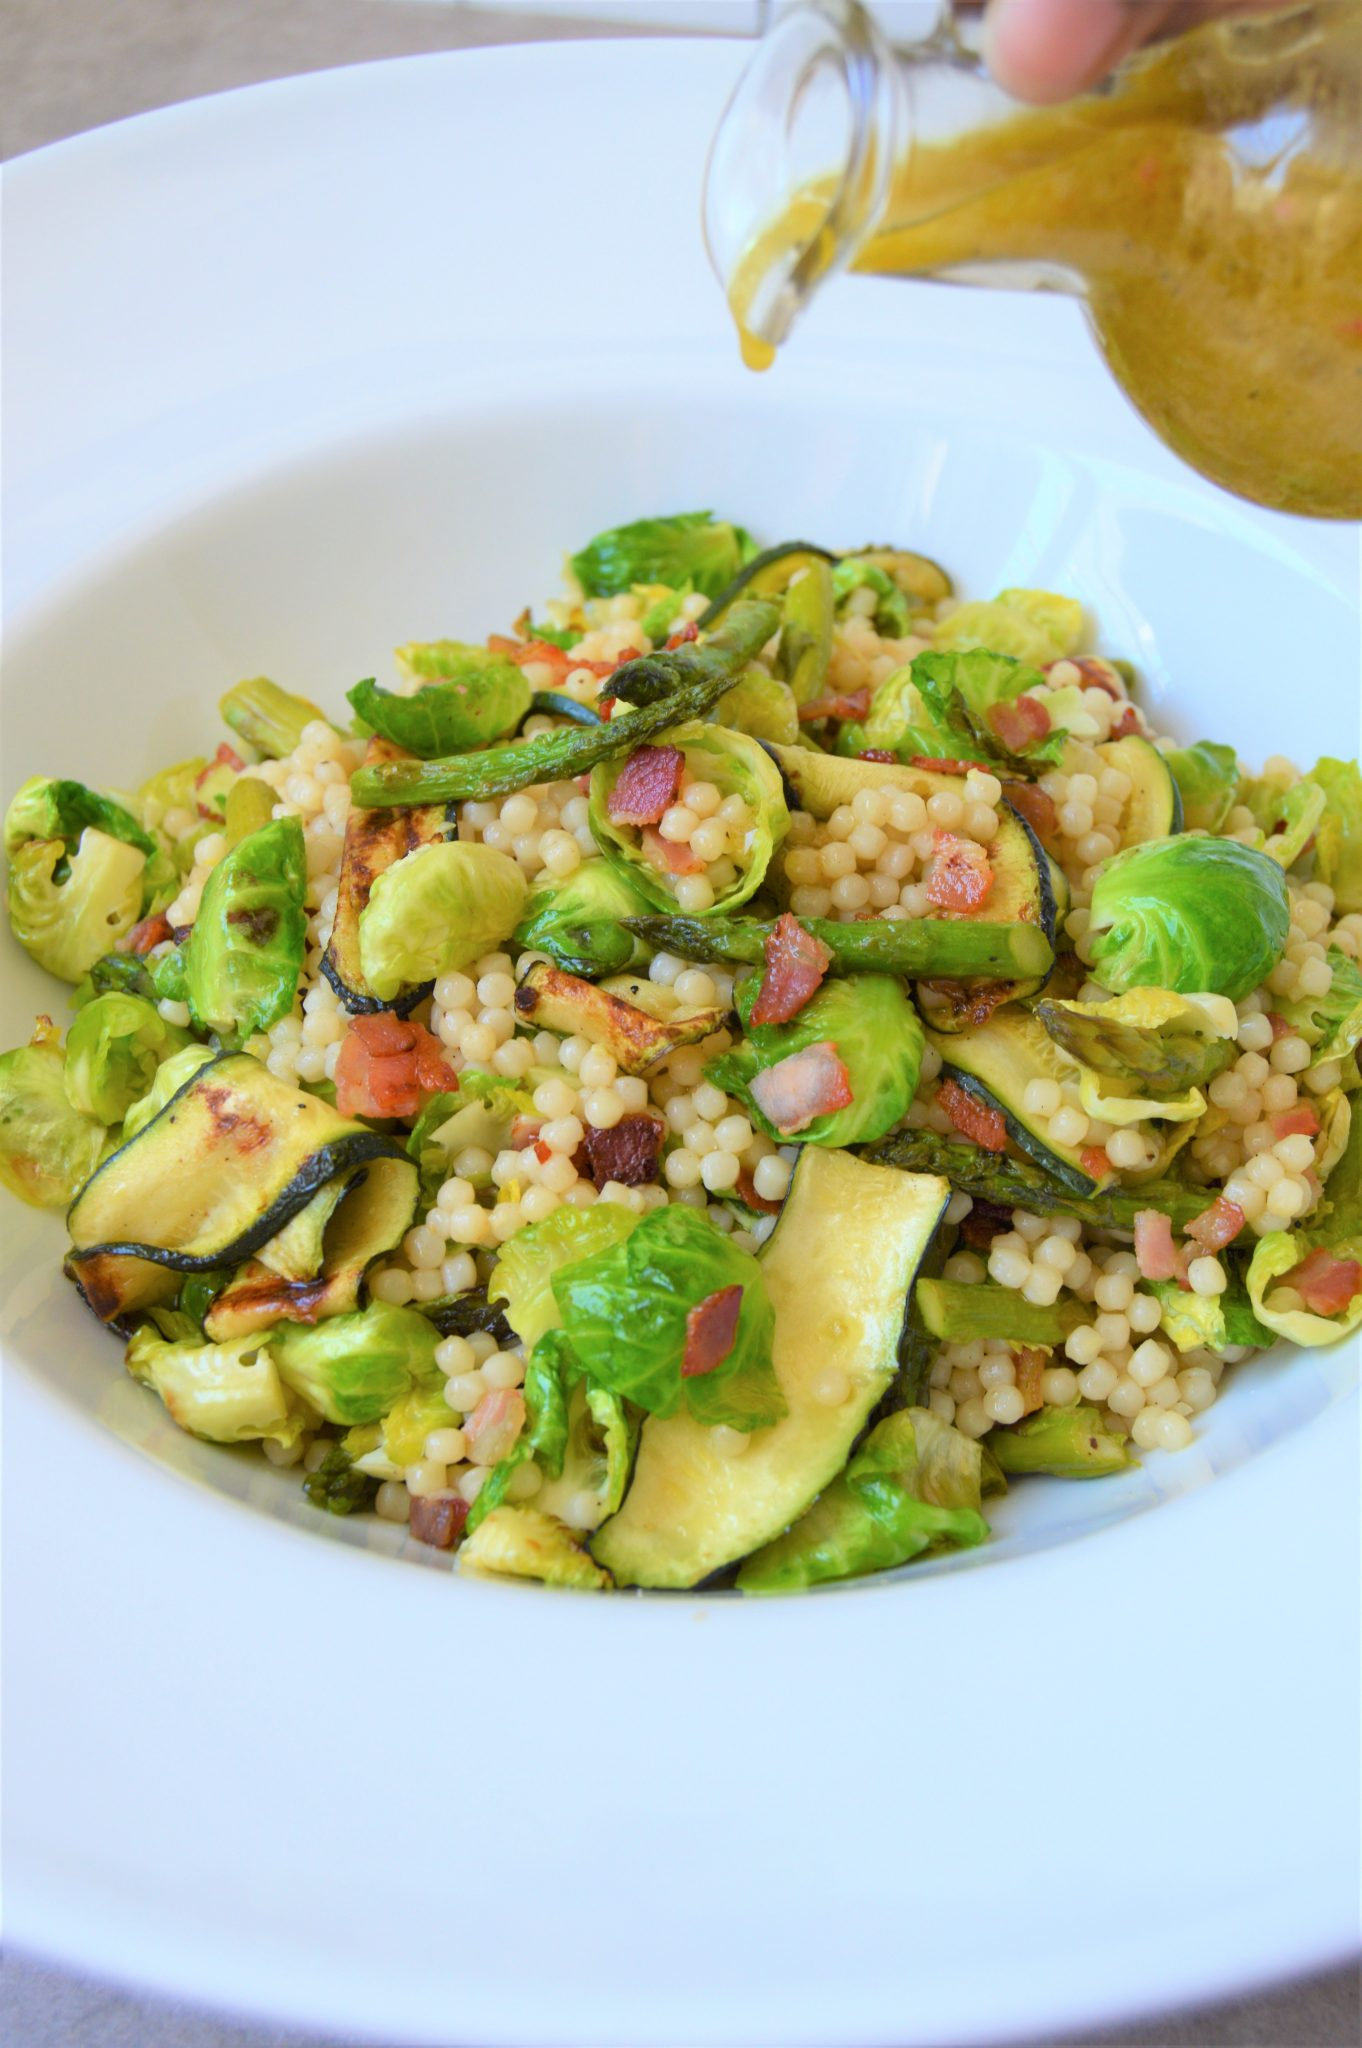 Wonderful spring sprouts pearl couscous salad - The Petit Gourmet